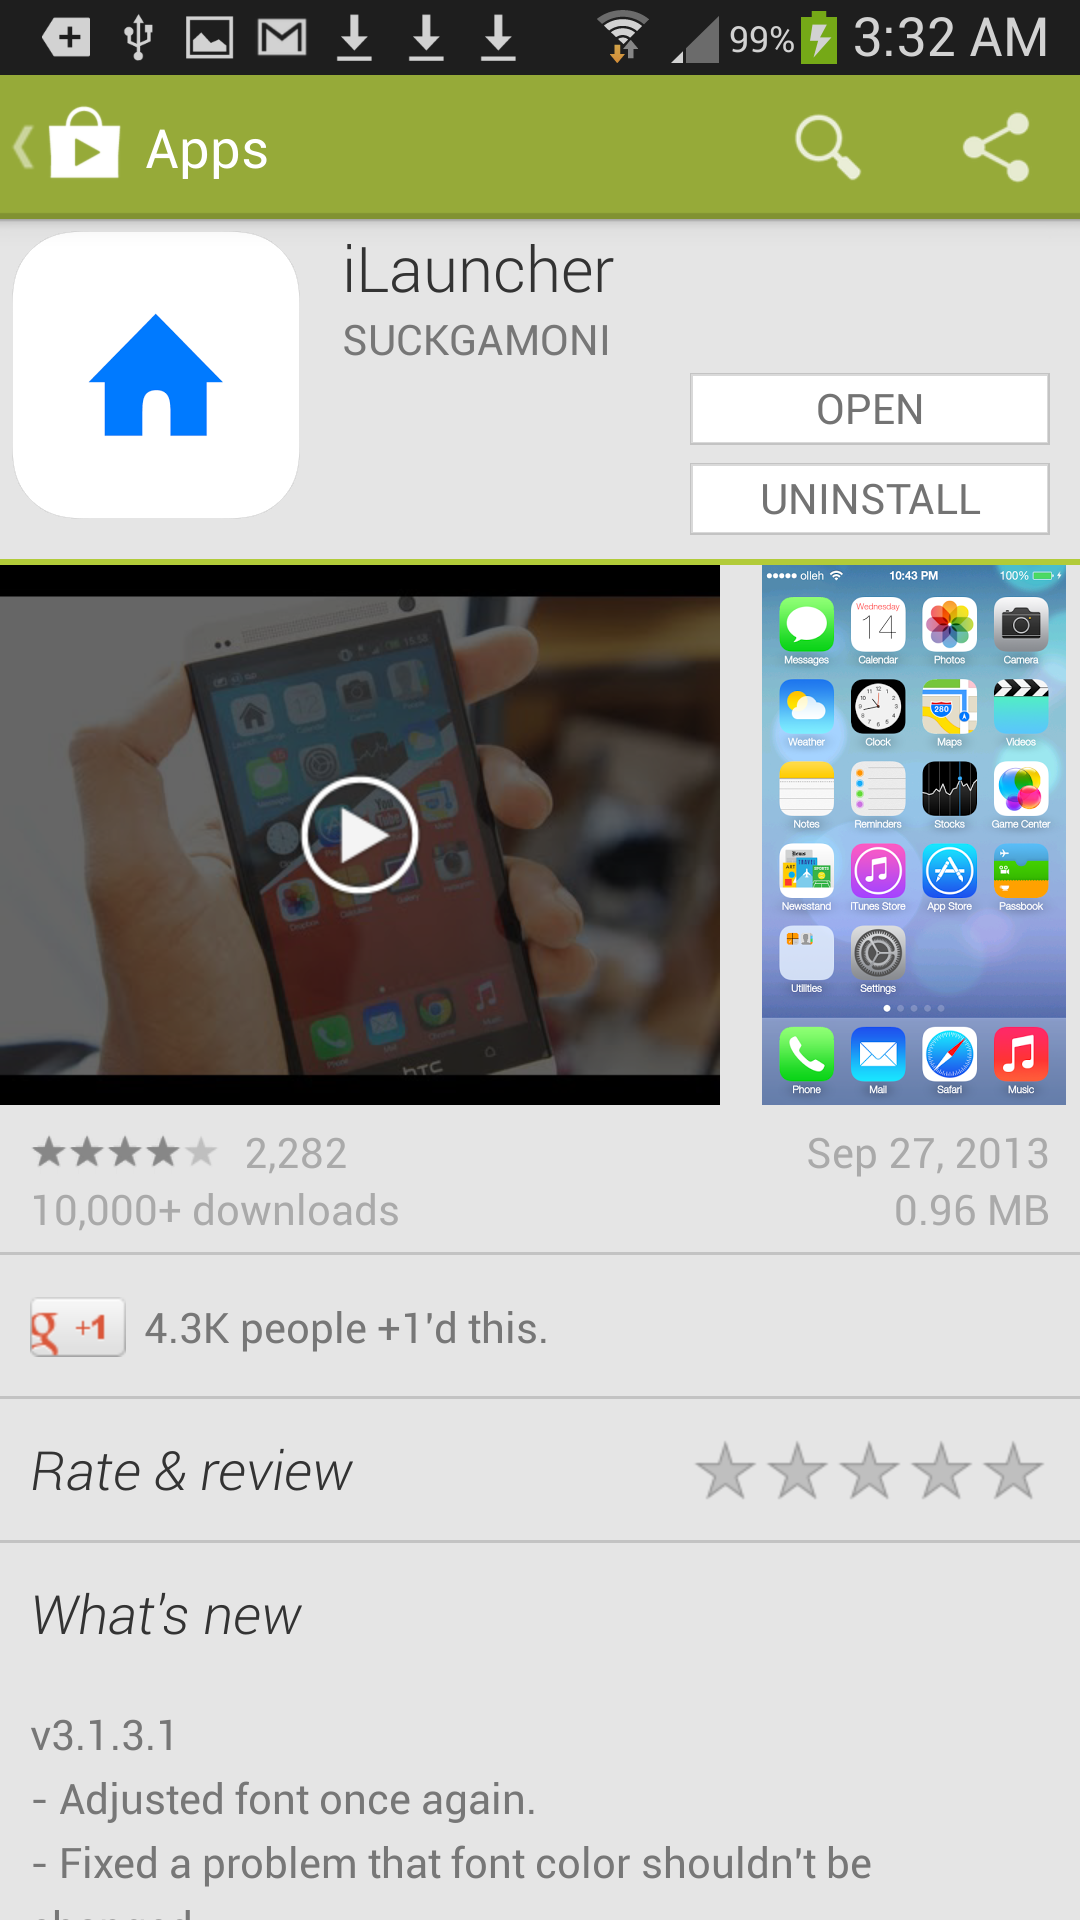 iOS 7 iLauncher at the Google Play Store